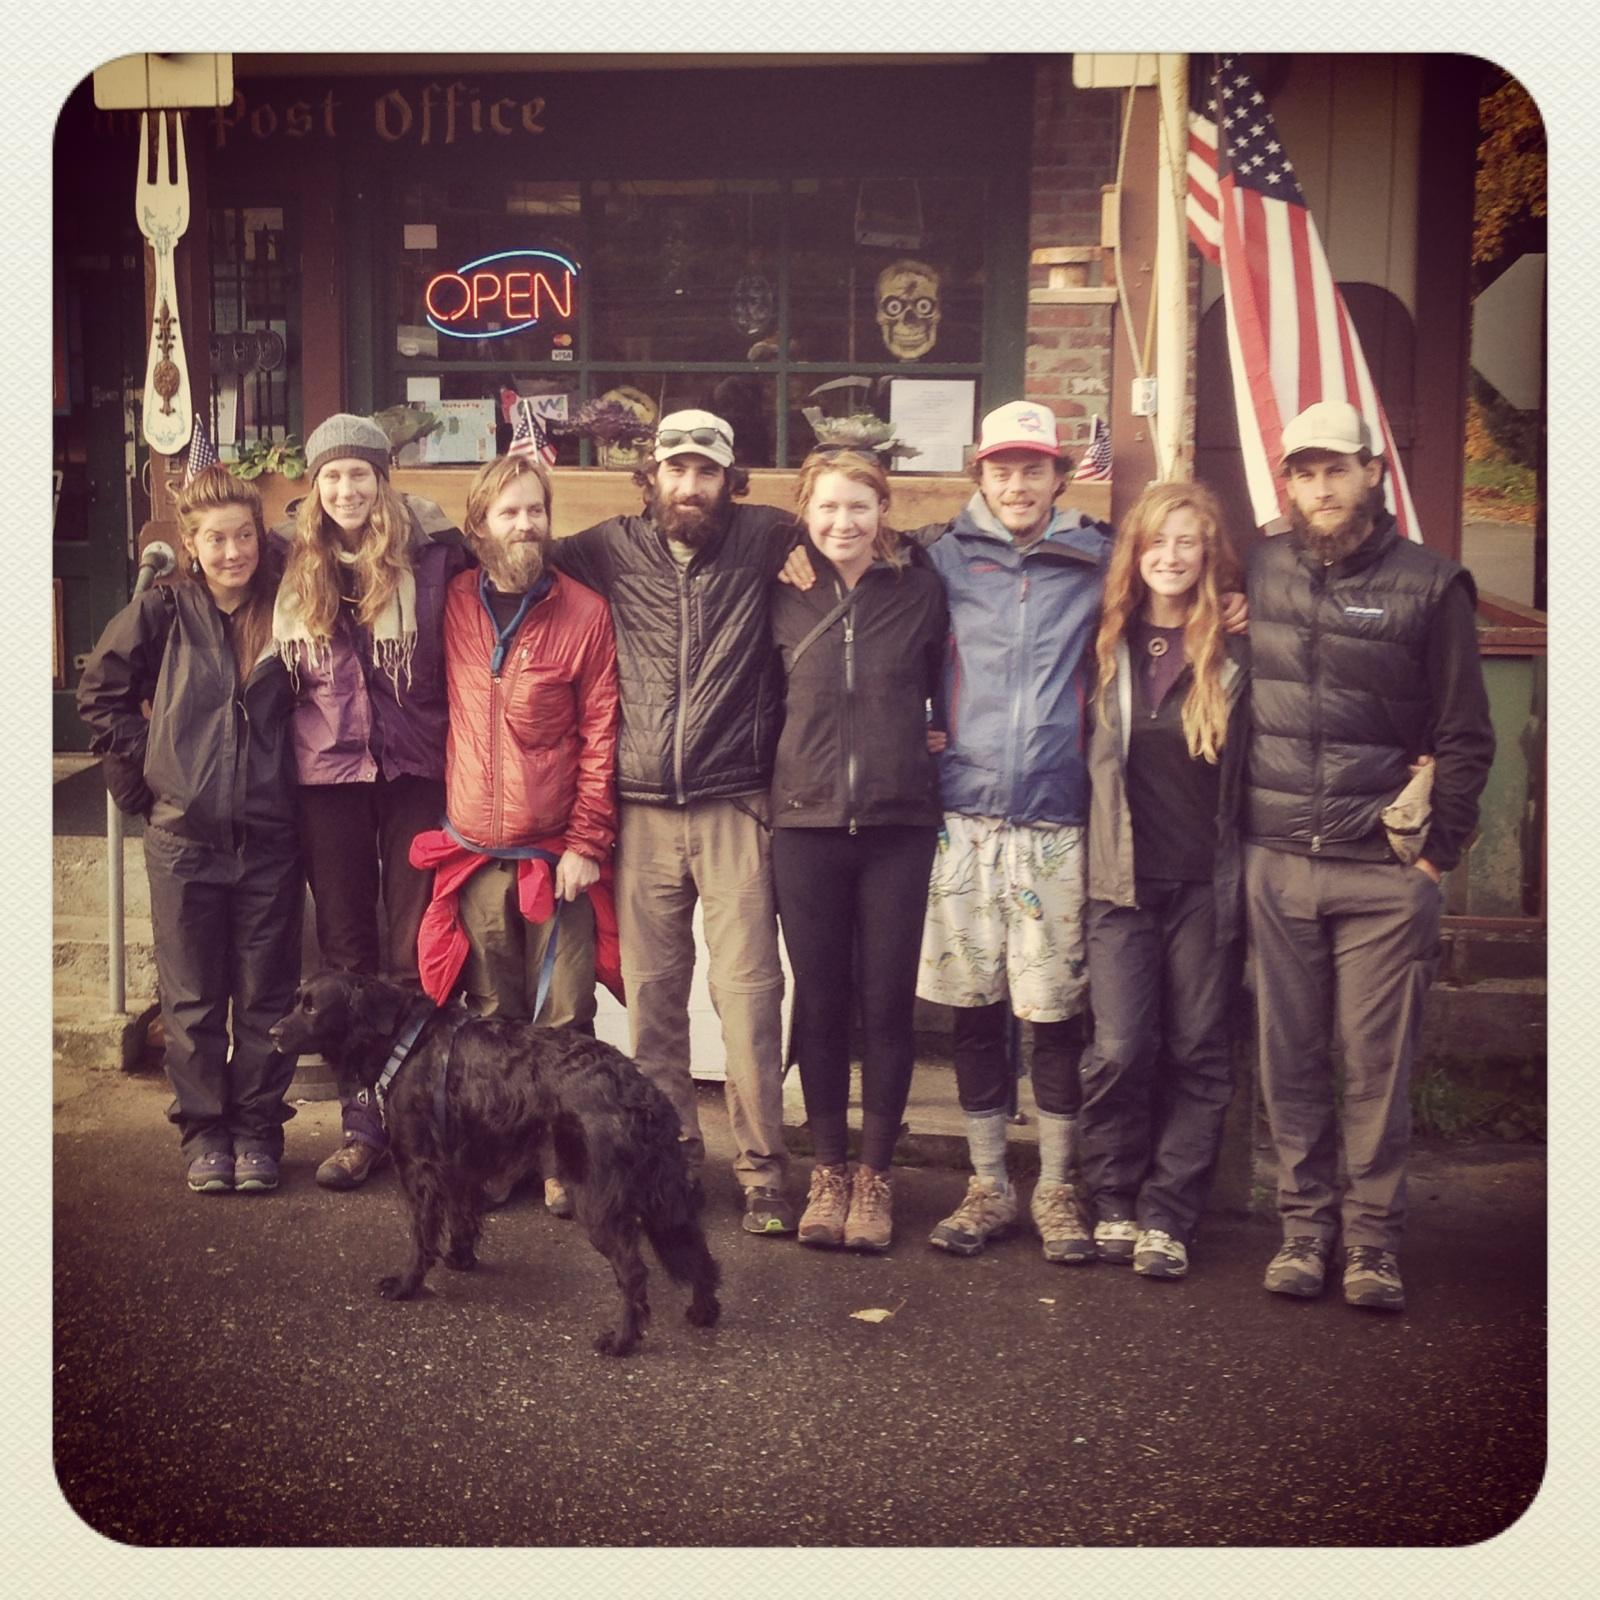 Our expedition team! Elizabeth, Luna, Werewolf, Coincidence (he was there for support!), Outburst, Thirty Pack, Hot Tub, Sweet Tooth and SupDog.